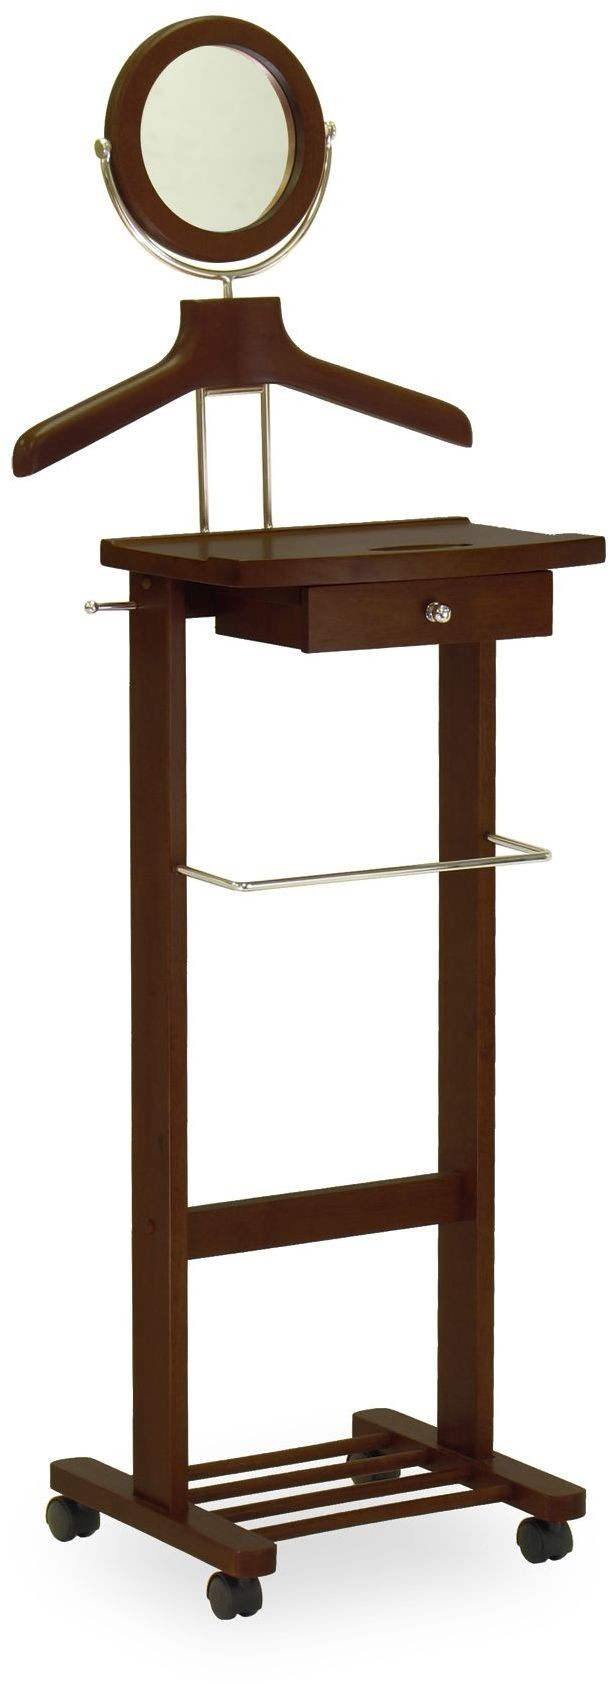 Vanity antique walnut valet stand 94155 winsome for Vanity stand